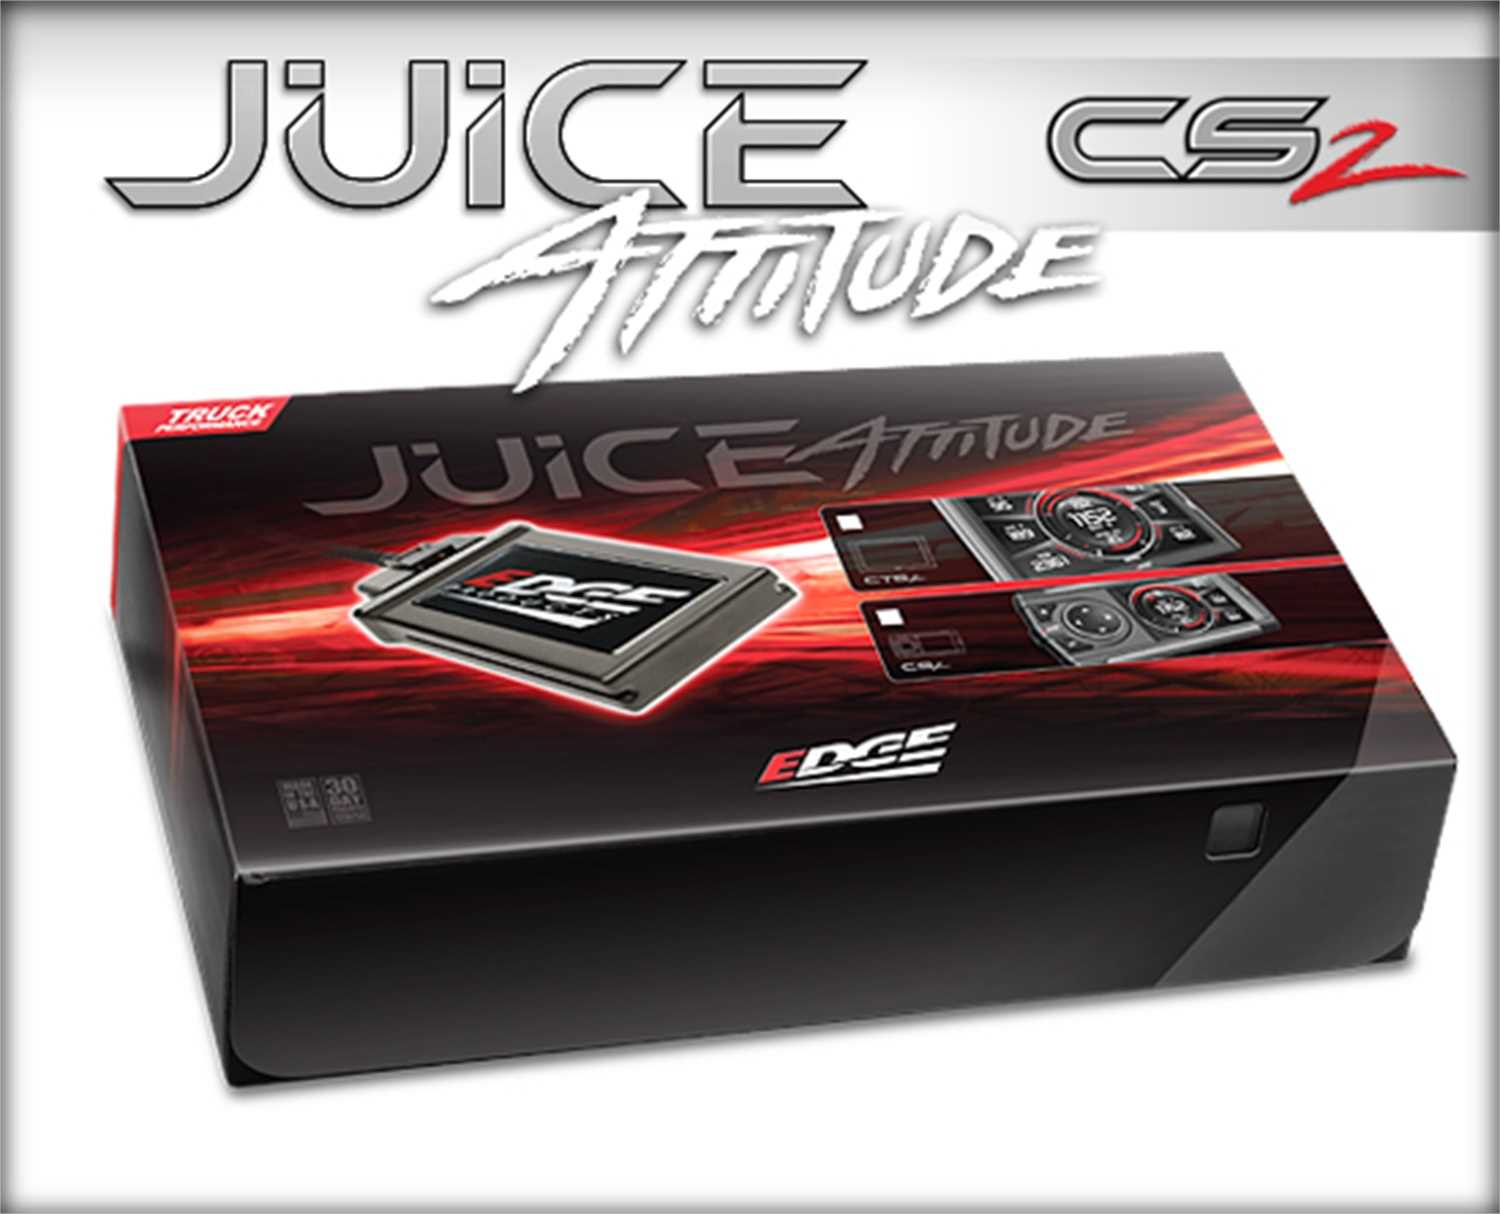 Edge Products Juice w/Attitude CS2 Programmer 21403